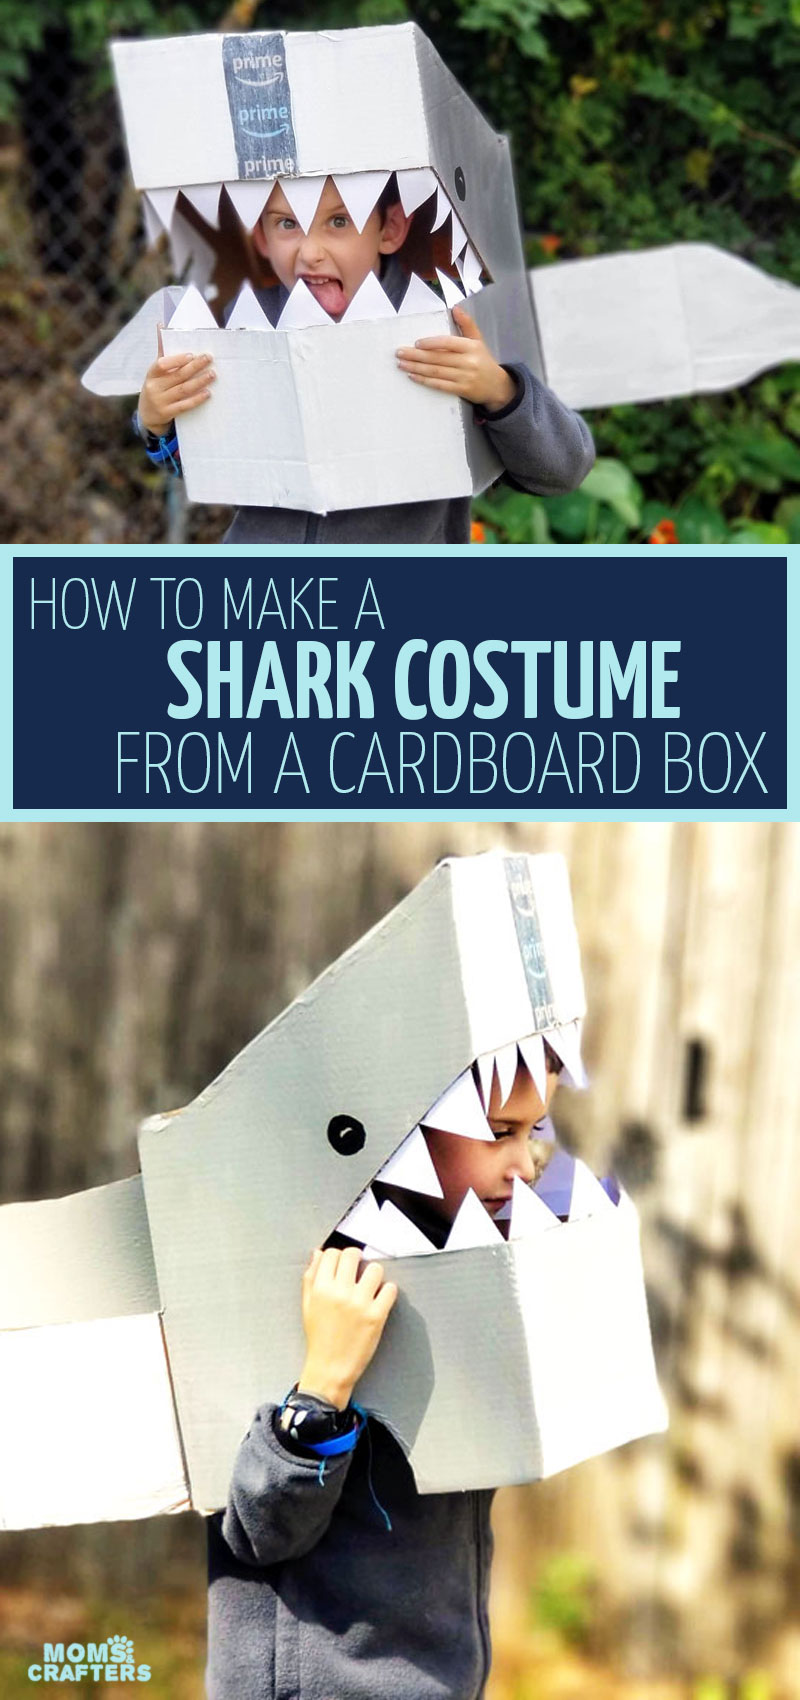 Click to learn how to make a DIY shark costume out of a cardboard box. This no sew Halloween costume can be adapted for Baby Shark or for pretend play! It's also a great man eating shark DIY costume idea.